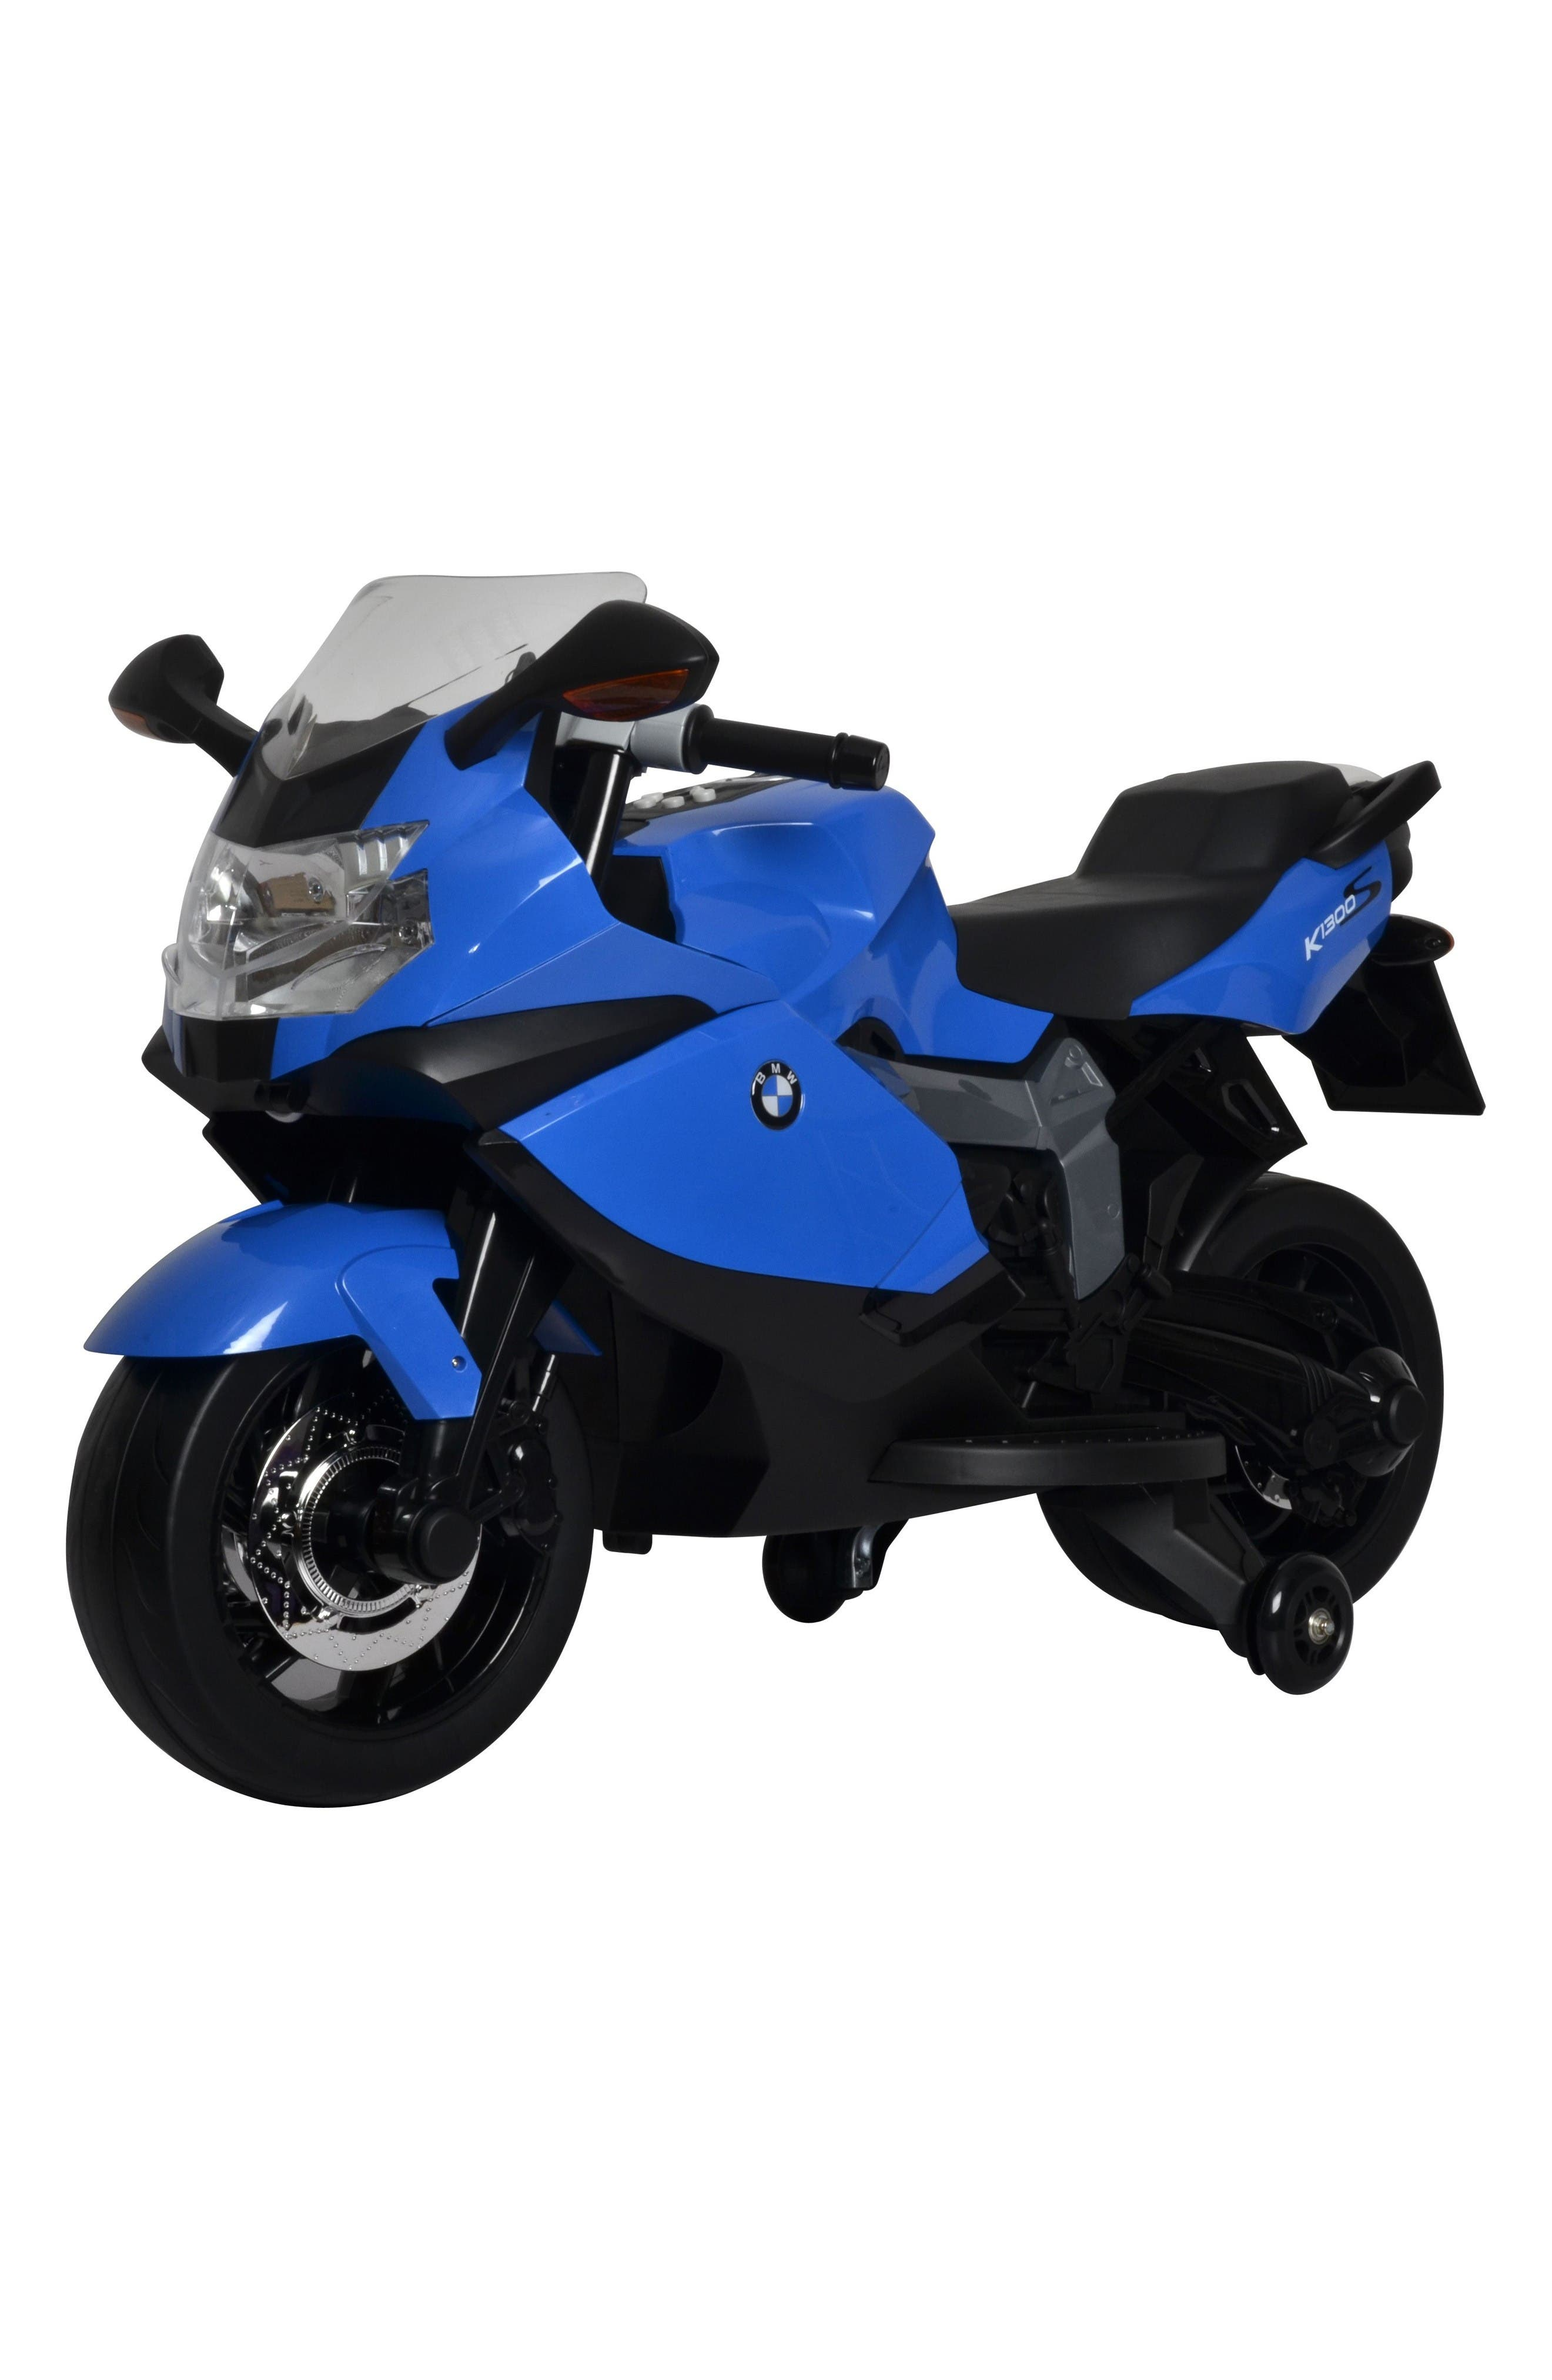 BMW Ride-On Toy Motorcycle,                         Main,                         color, Blue